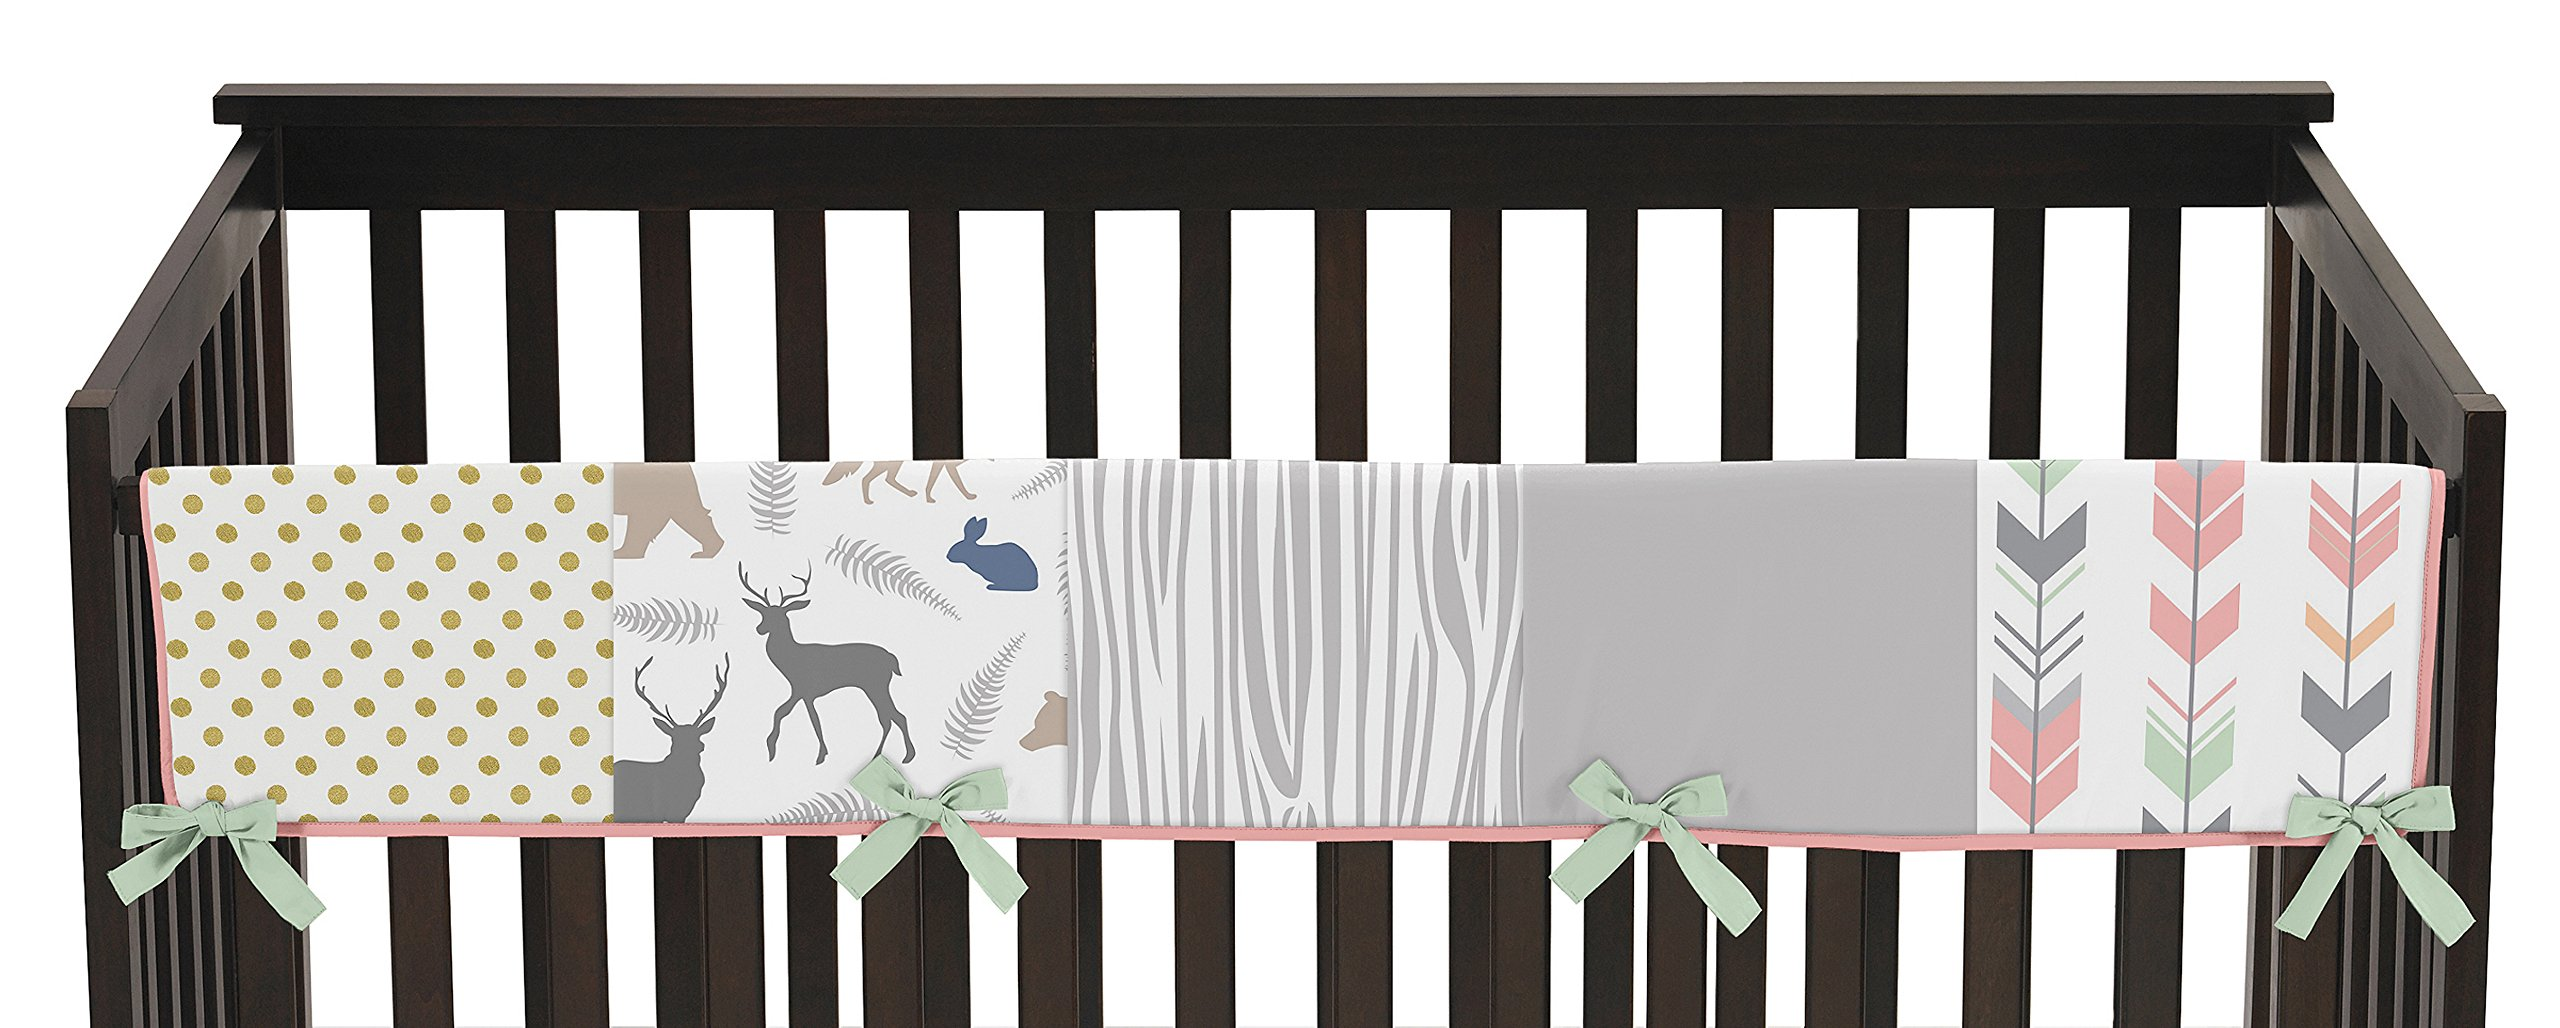 Sweet Jojo Designs Baby Crib Long Rail Guard Wrap Cover Teething Protector for Coral, Mint and Grey Woodsy Girl Bedding Collection